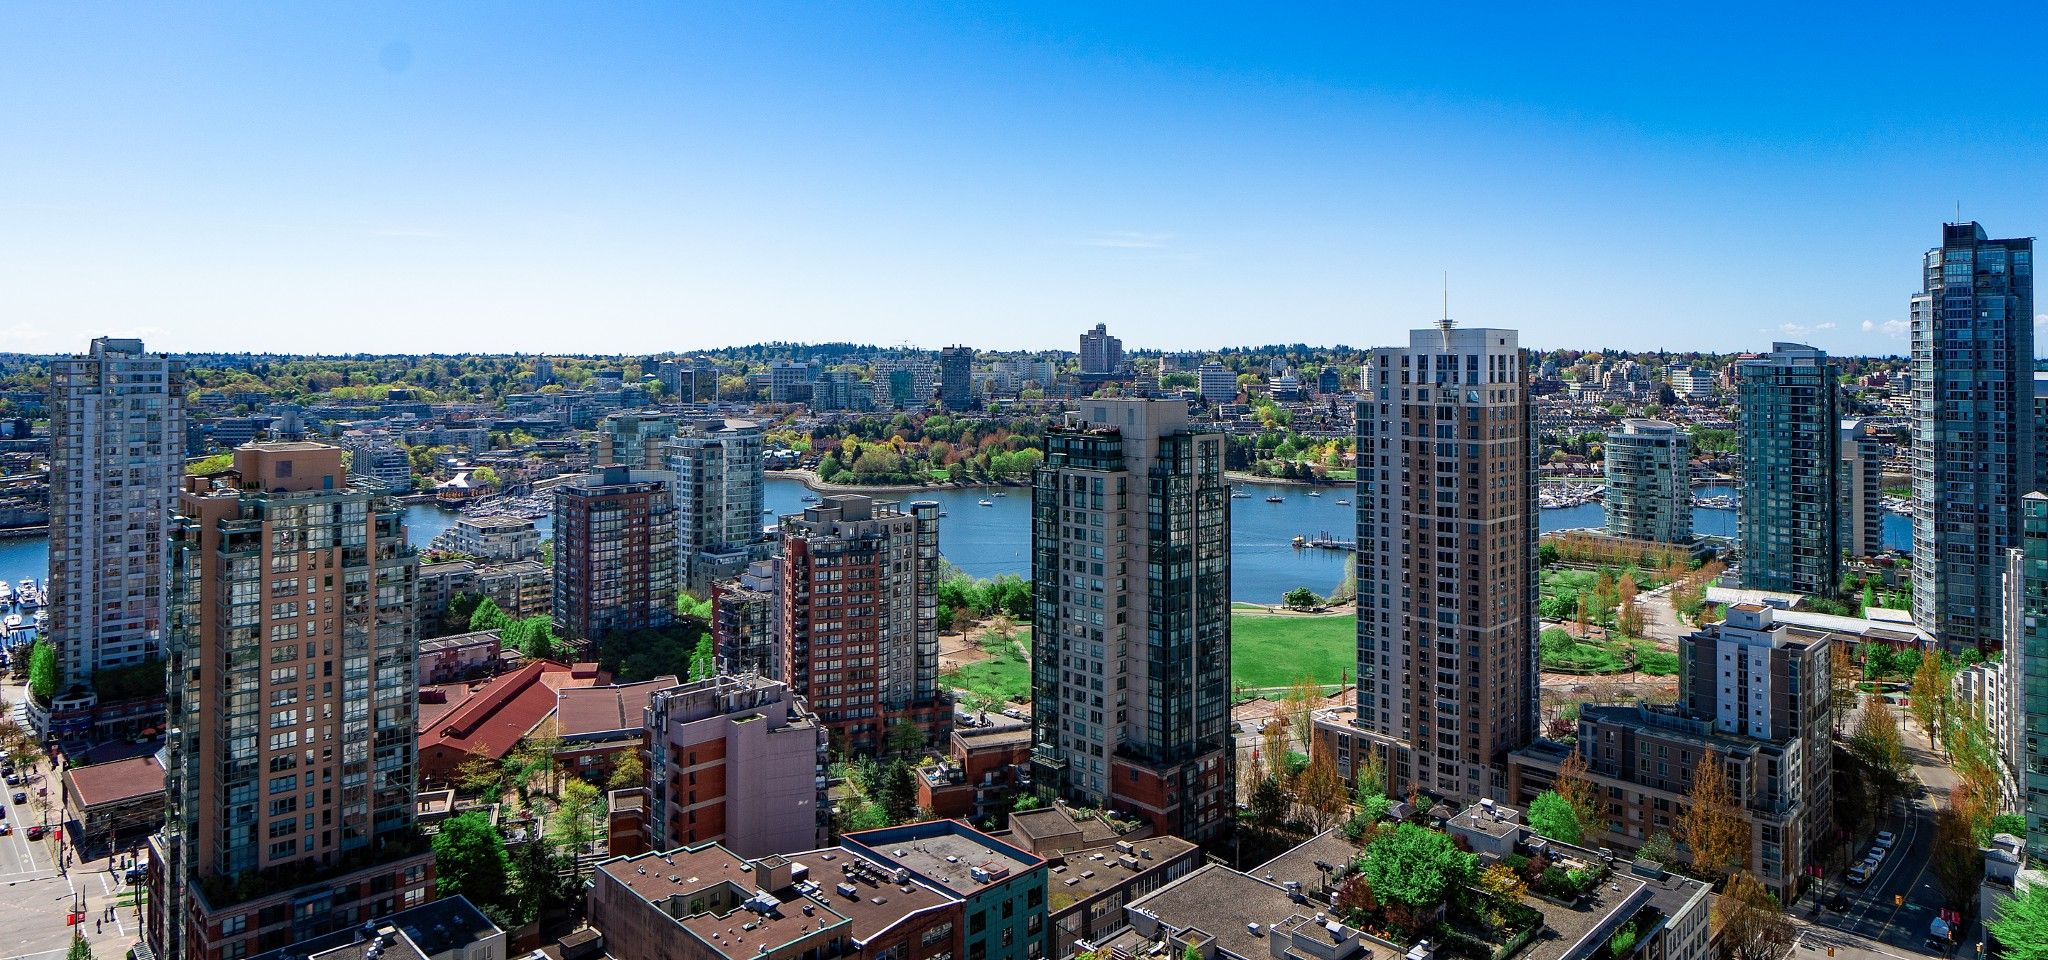 Main Photo: xxxx xx55 Homer Street in Vancouver: Yaletown Condo for sale (Vancouver West)